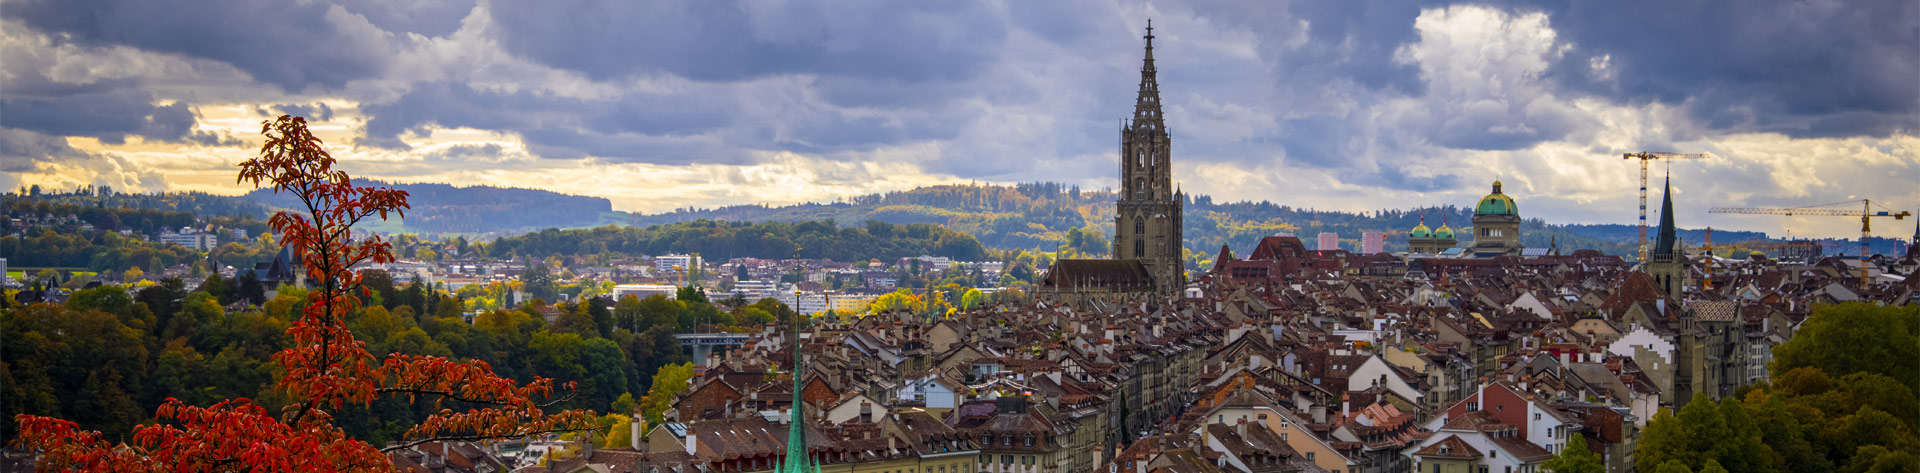 Panoramablick über Die Stadt Bern Capital City AdobeStock 392151884 1920x